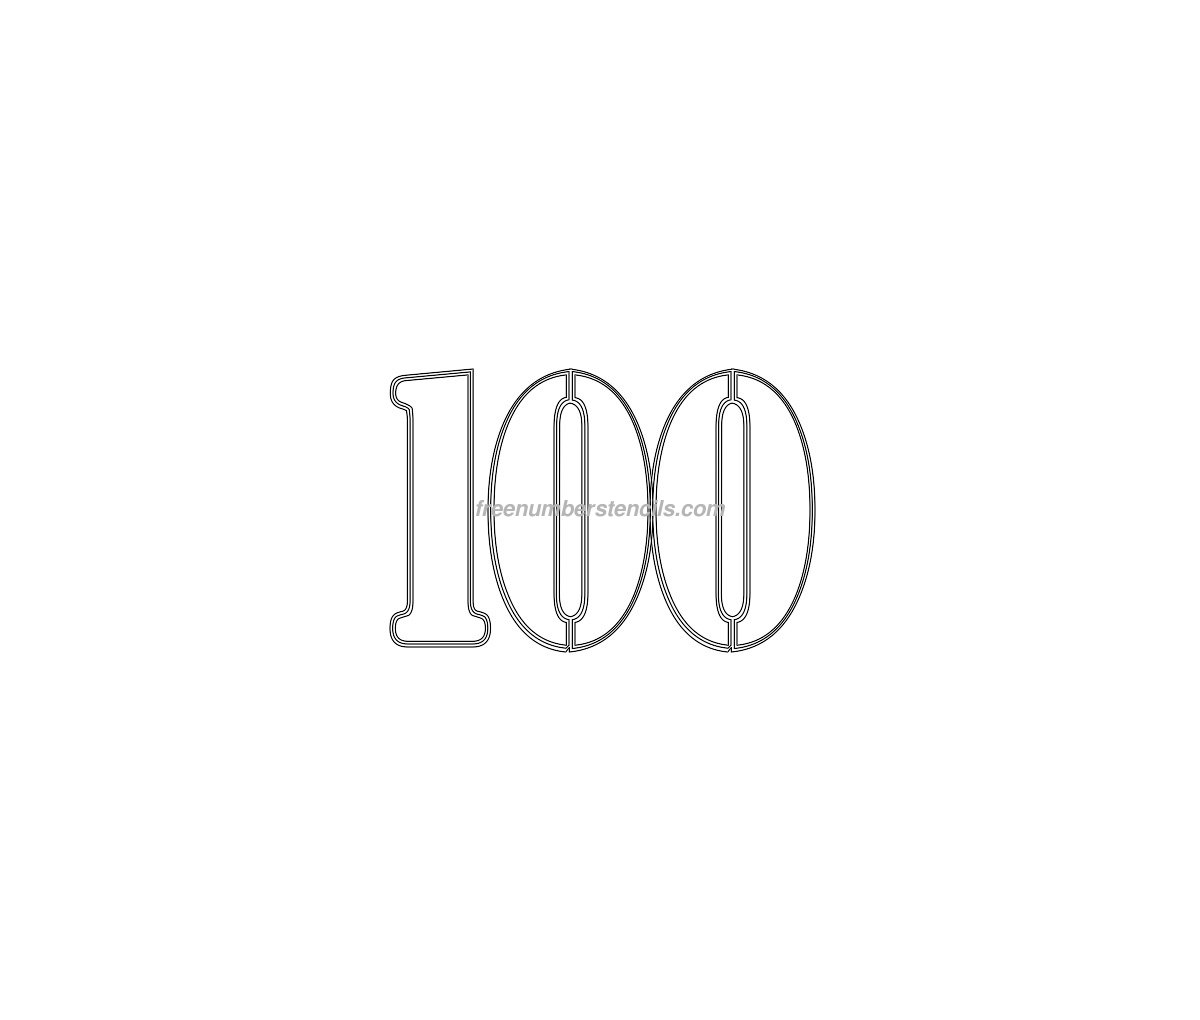 template for numbers 1 100 - number 100 template bing images